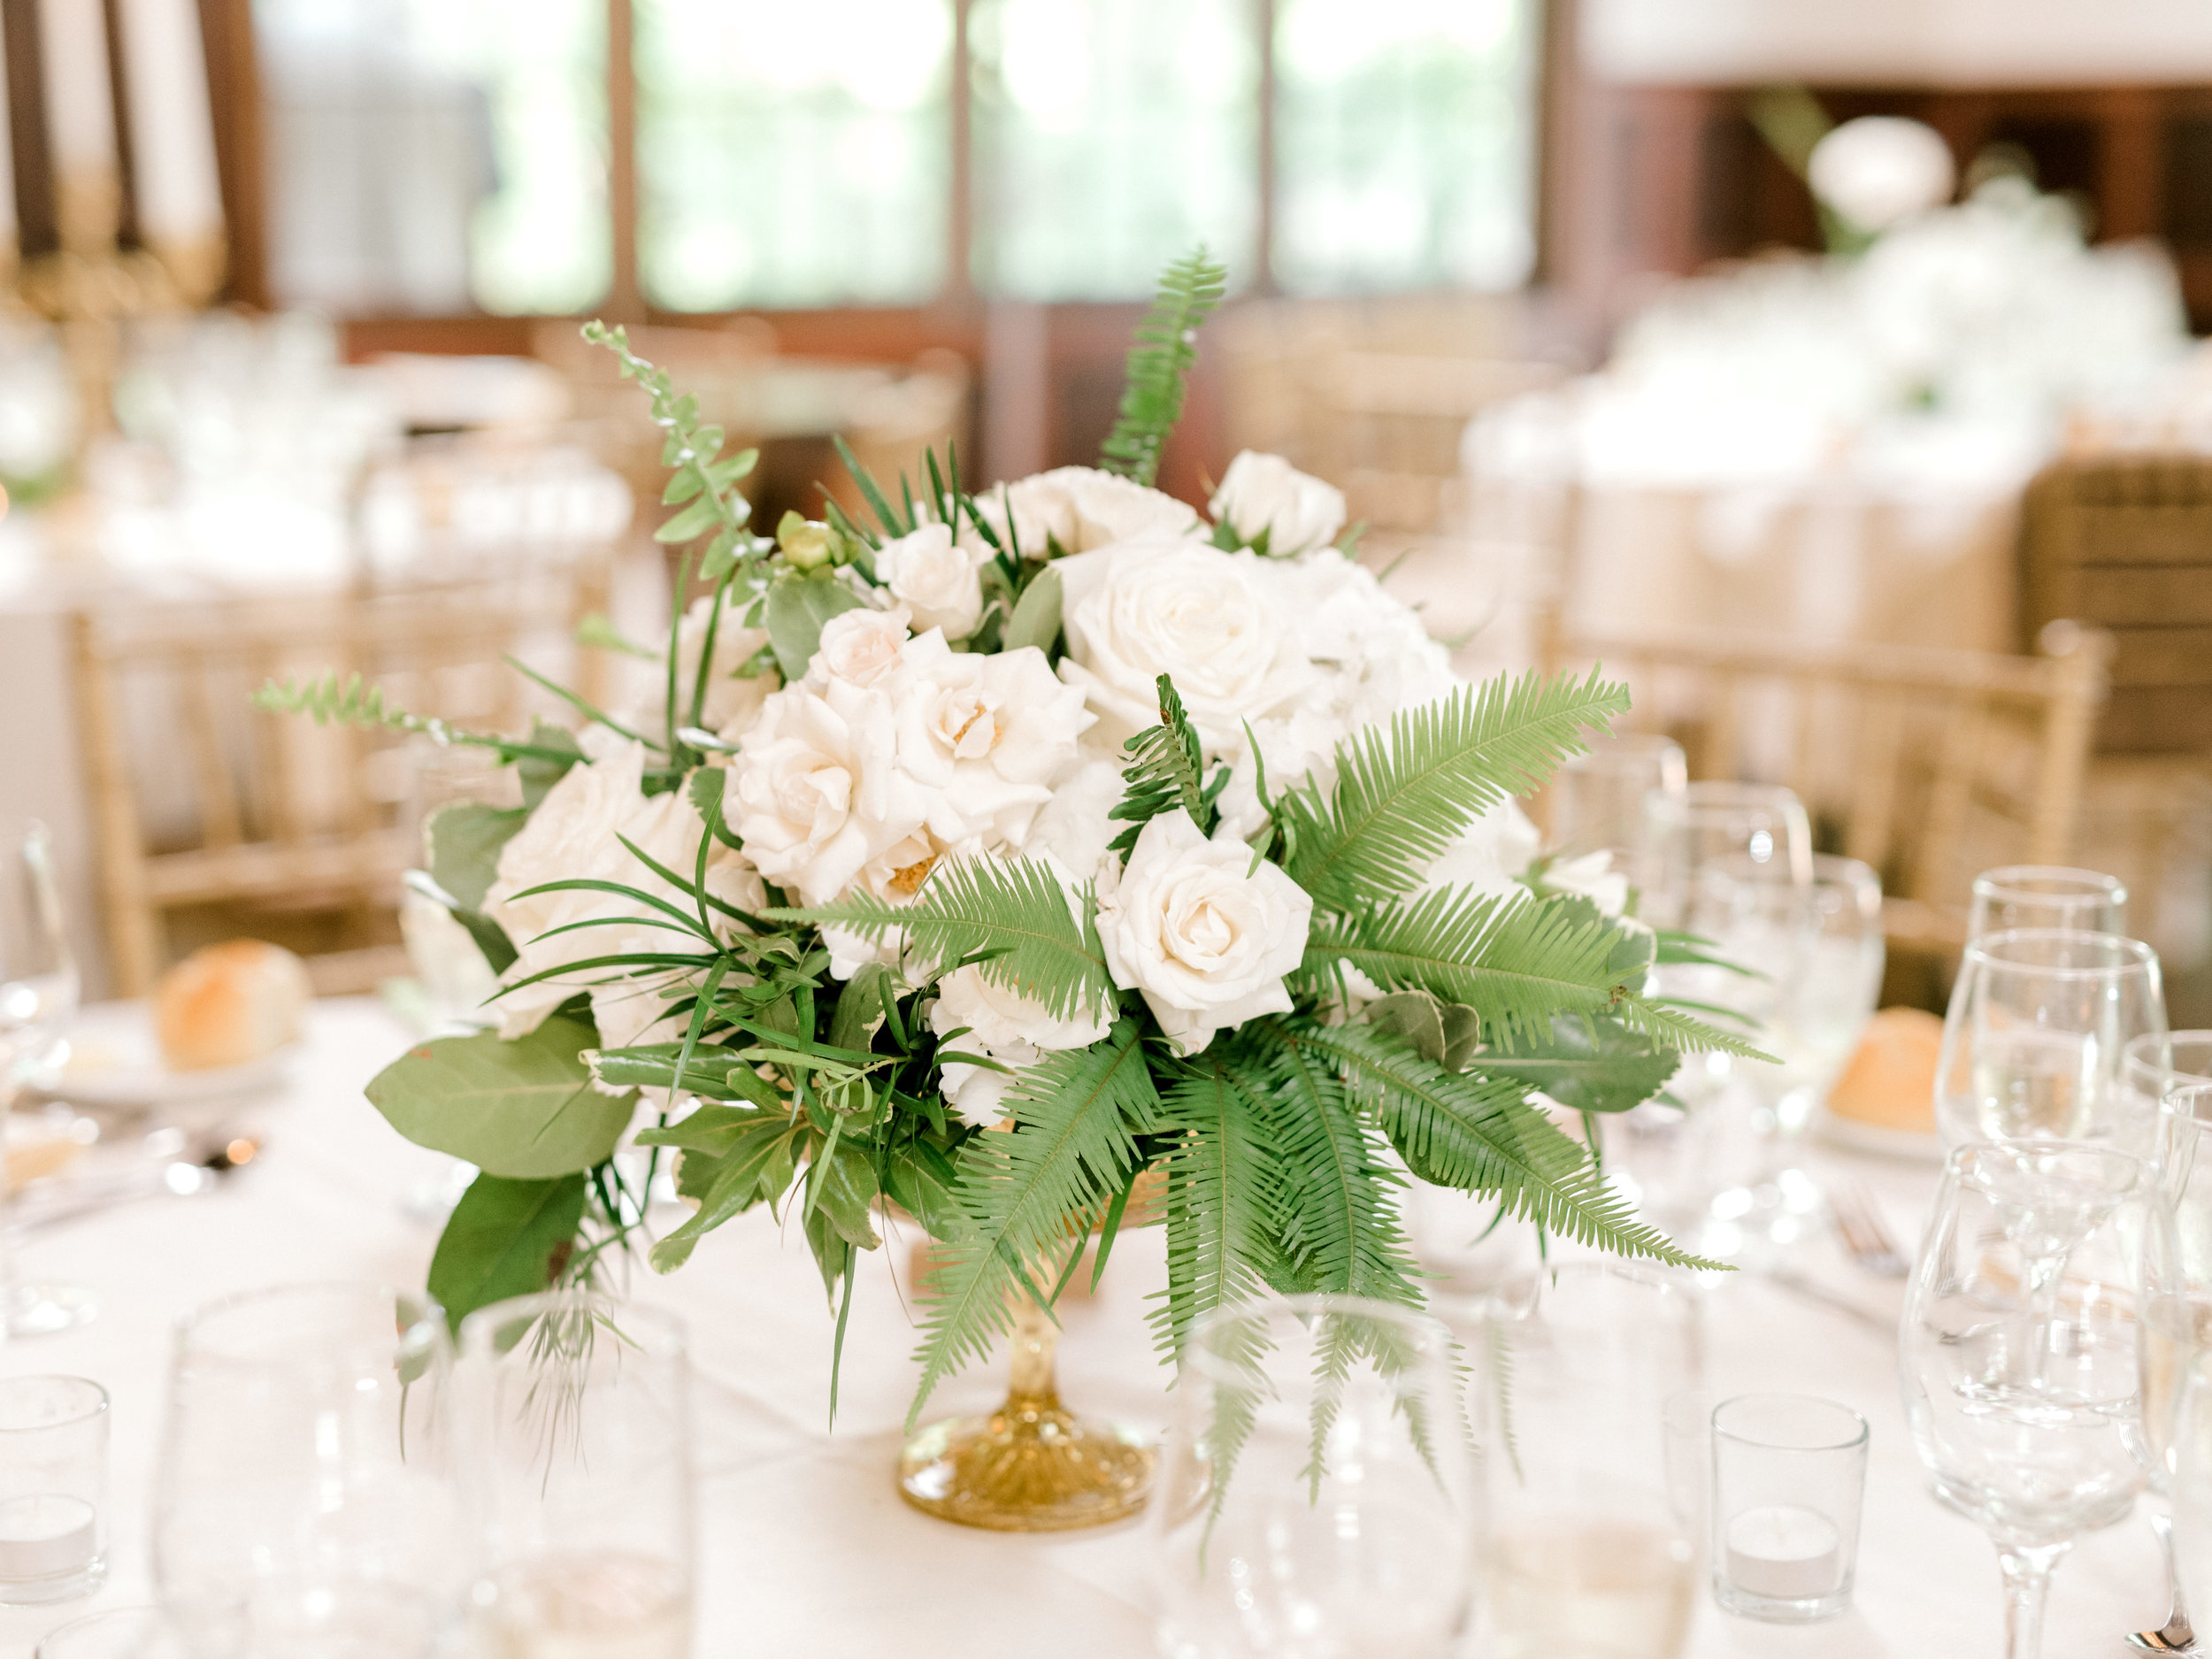 We loved the modern mix of white roses and green ferns to add a bright pop to this elegant and modern summer wedding at Hotel du Village.